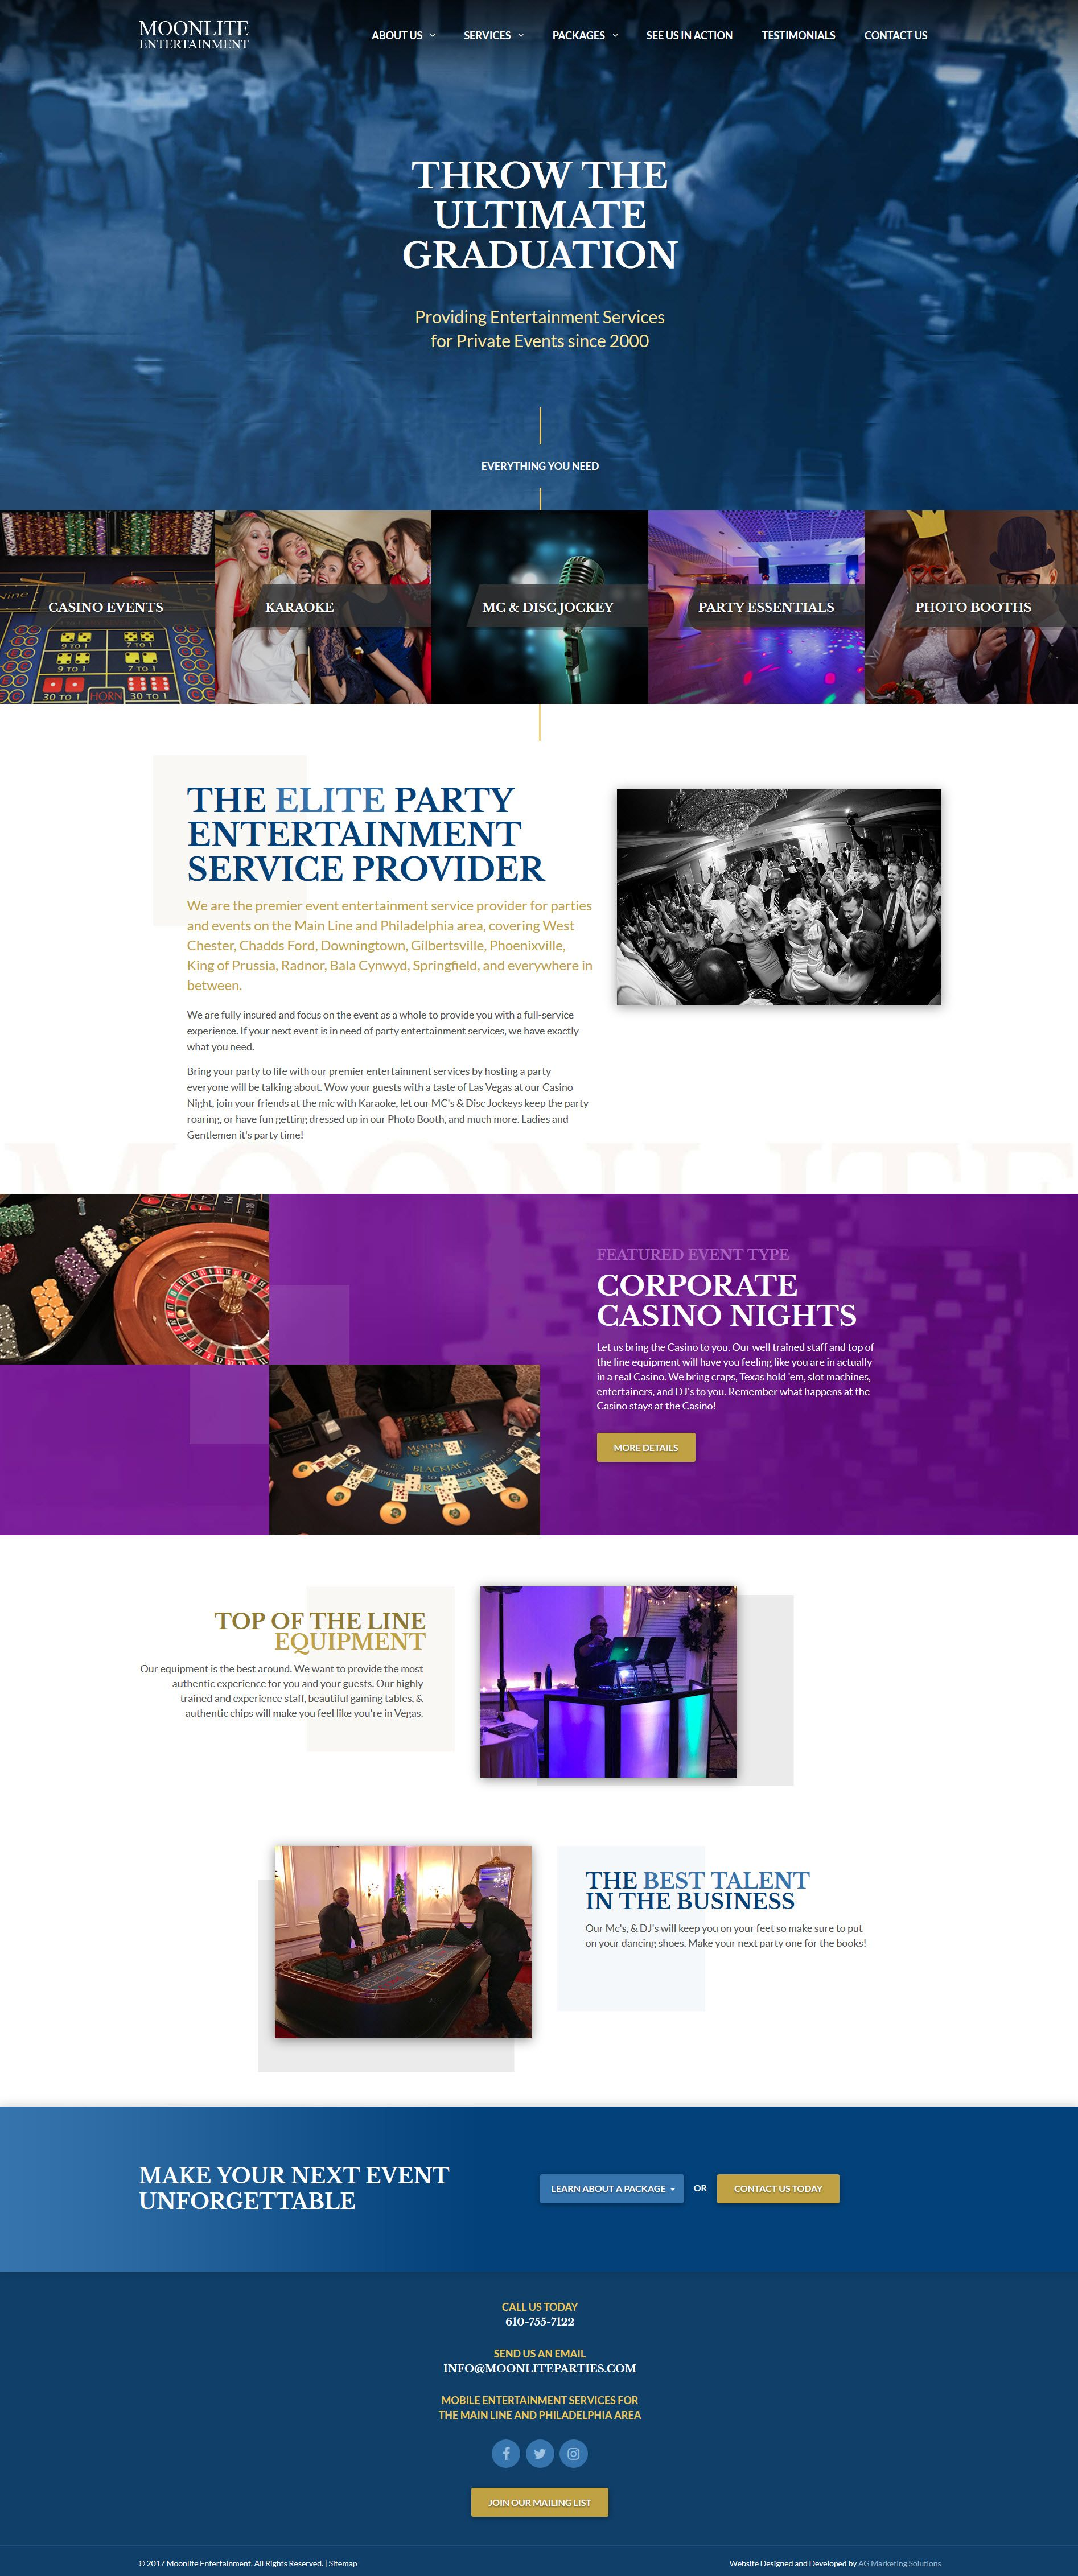 Moonlite Entertainment responsive website on a phone